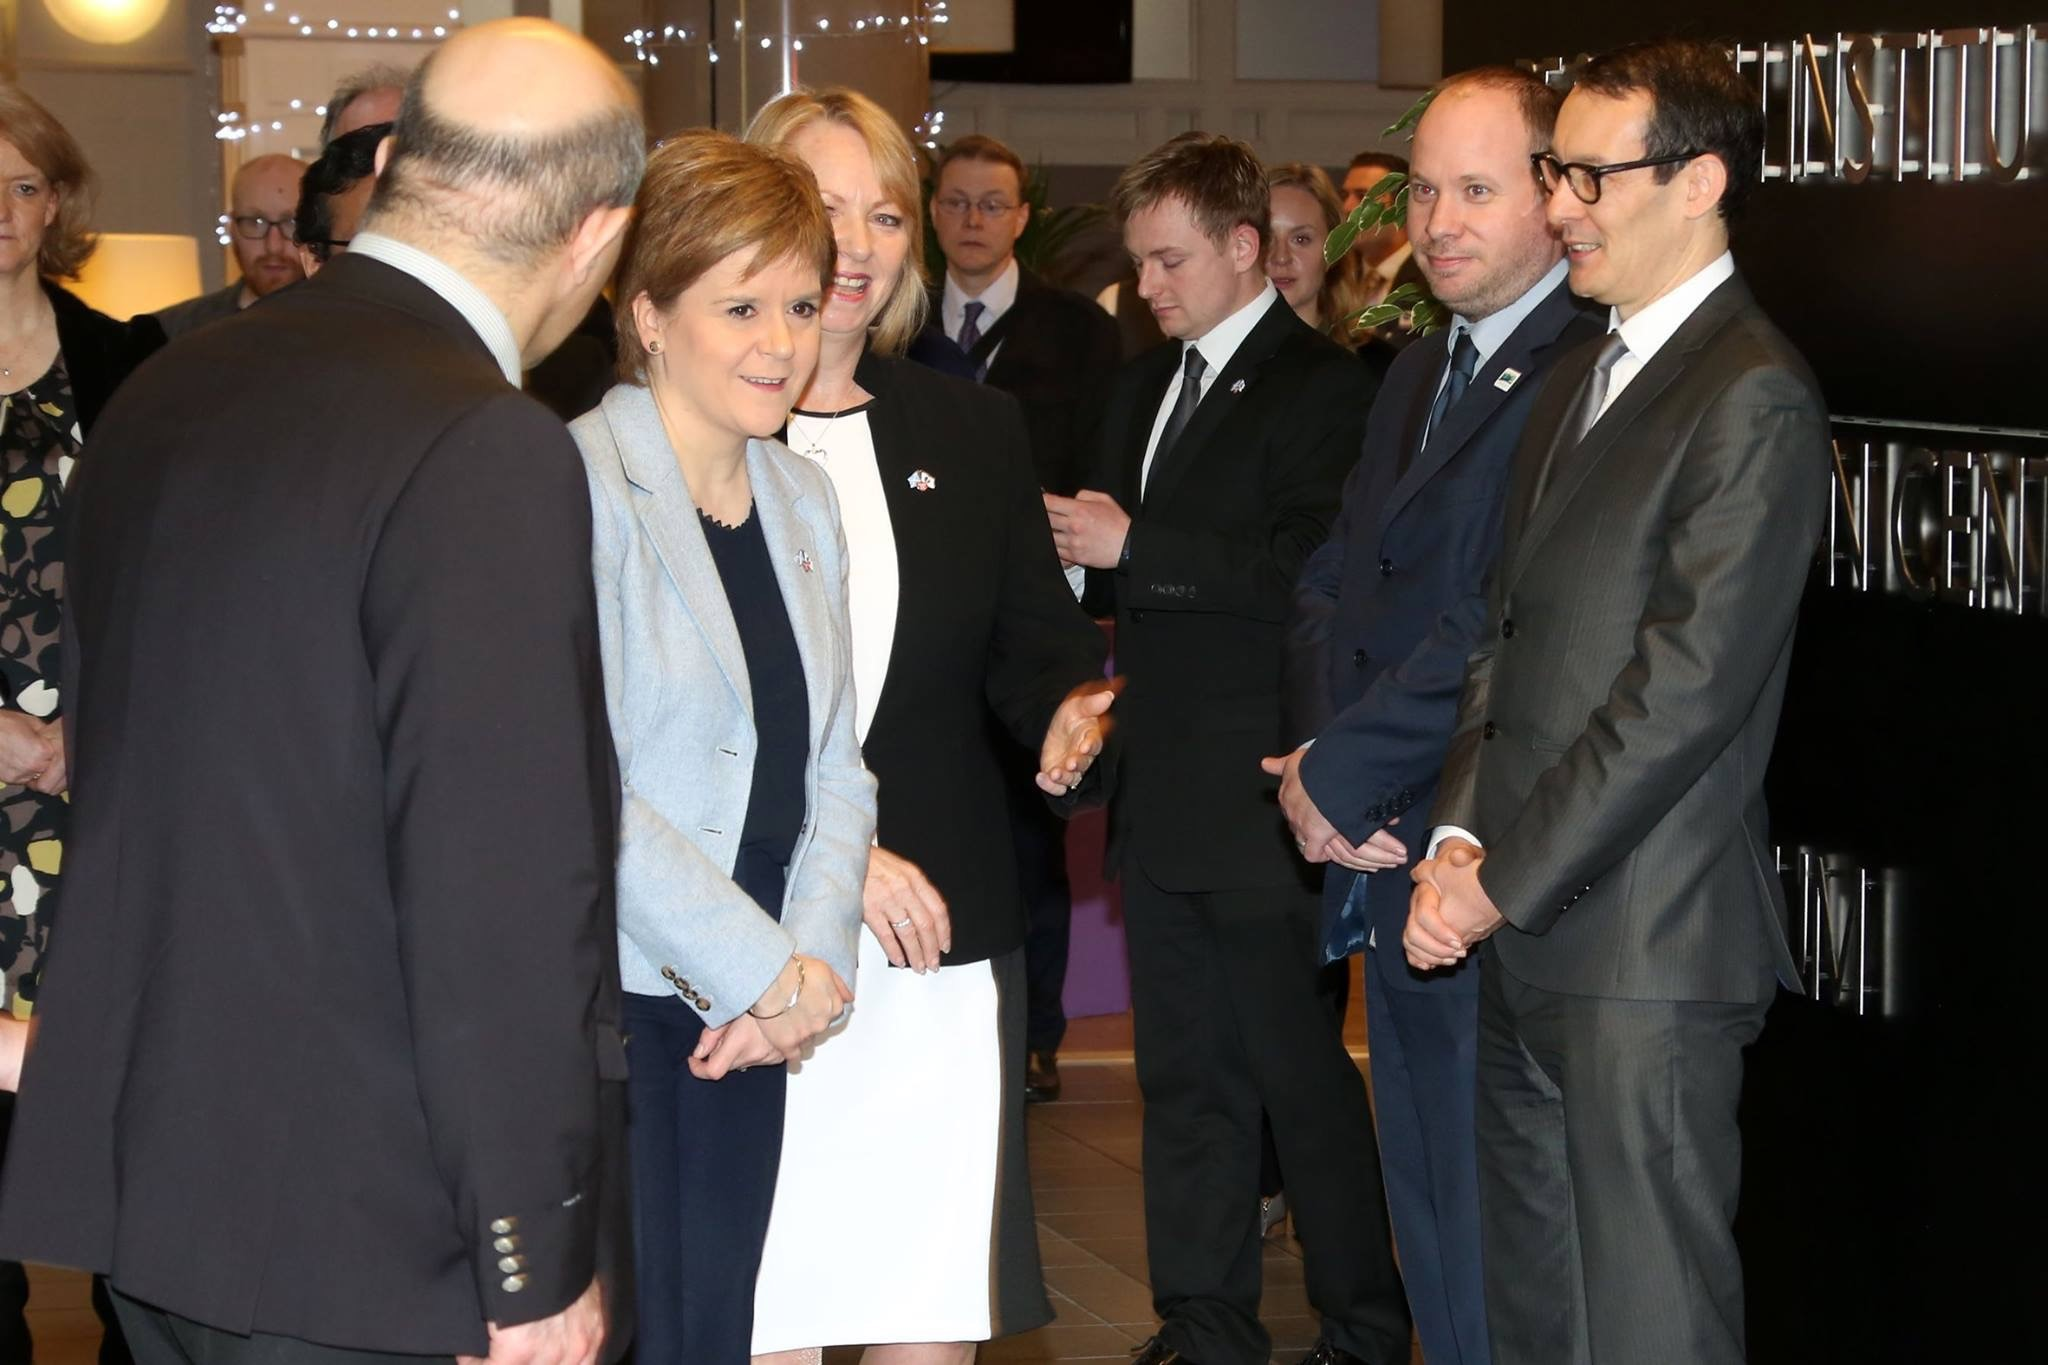 Damon Scott & Philip Briscoe of Dunbartonshire Chamber meet Nicola Sturgeon